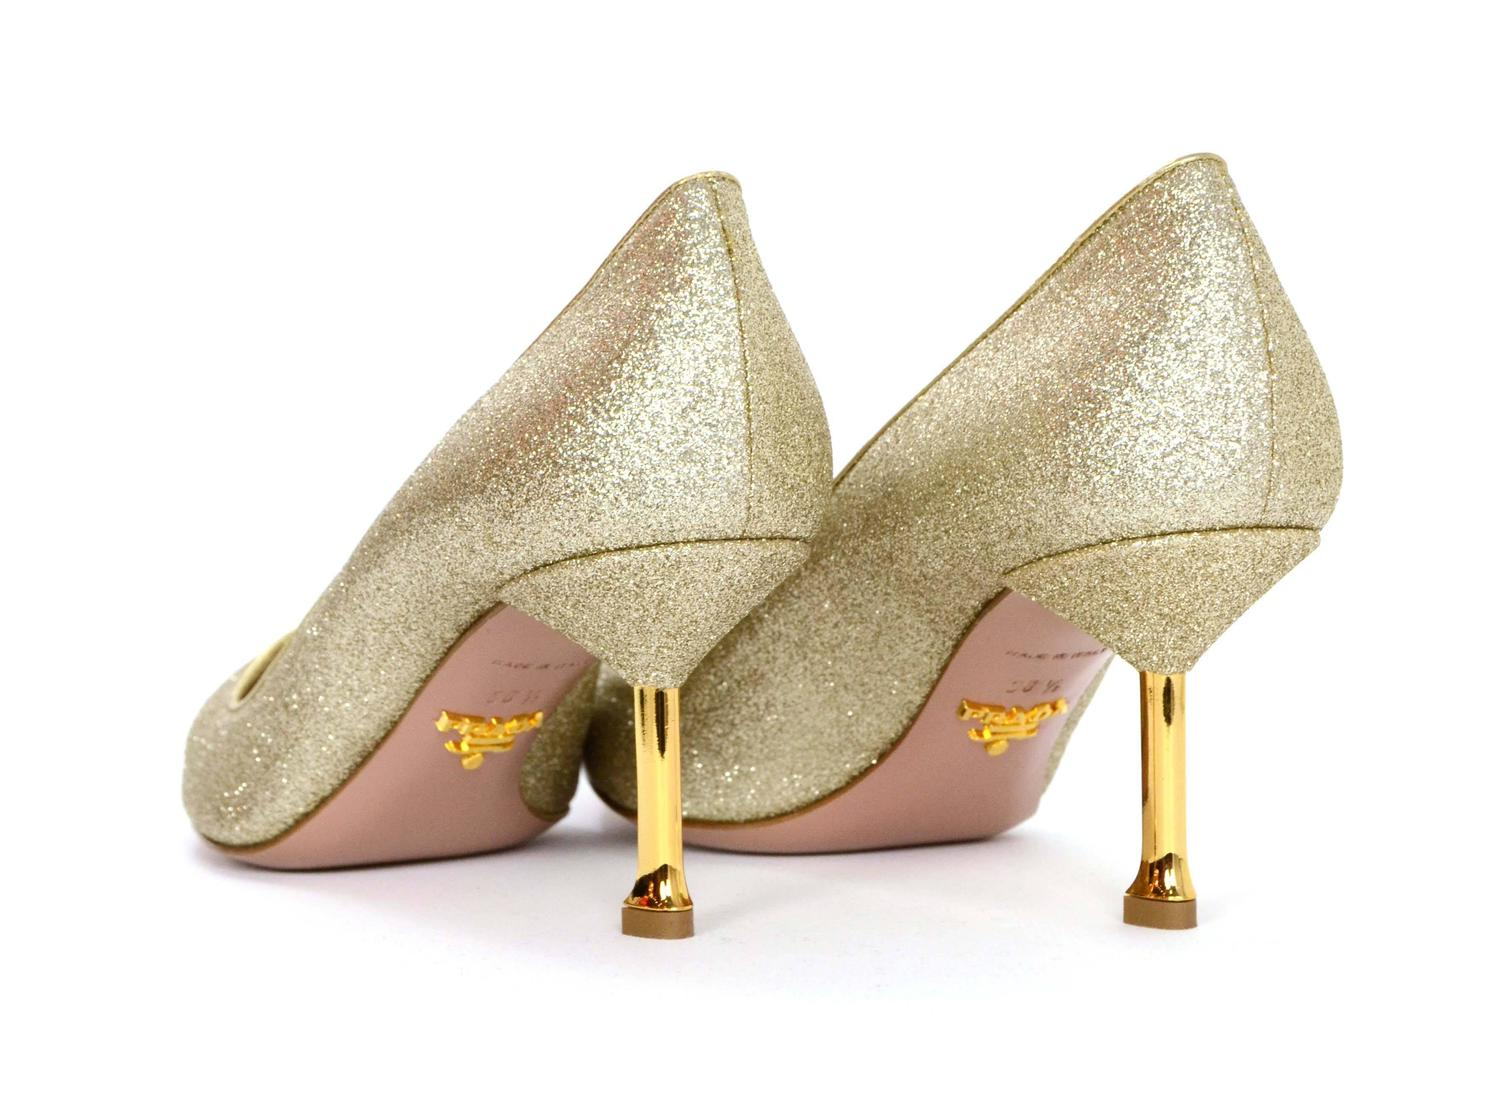 fe36cf3e92aa0 Prada Gold Glitter Kitten Heel Pumps sz 38.5 at 1stdibs